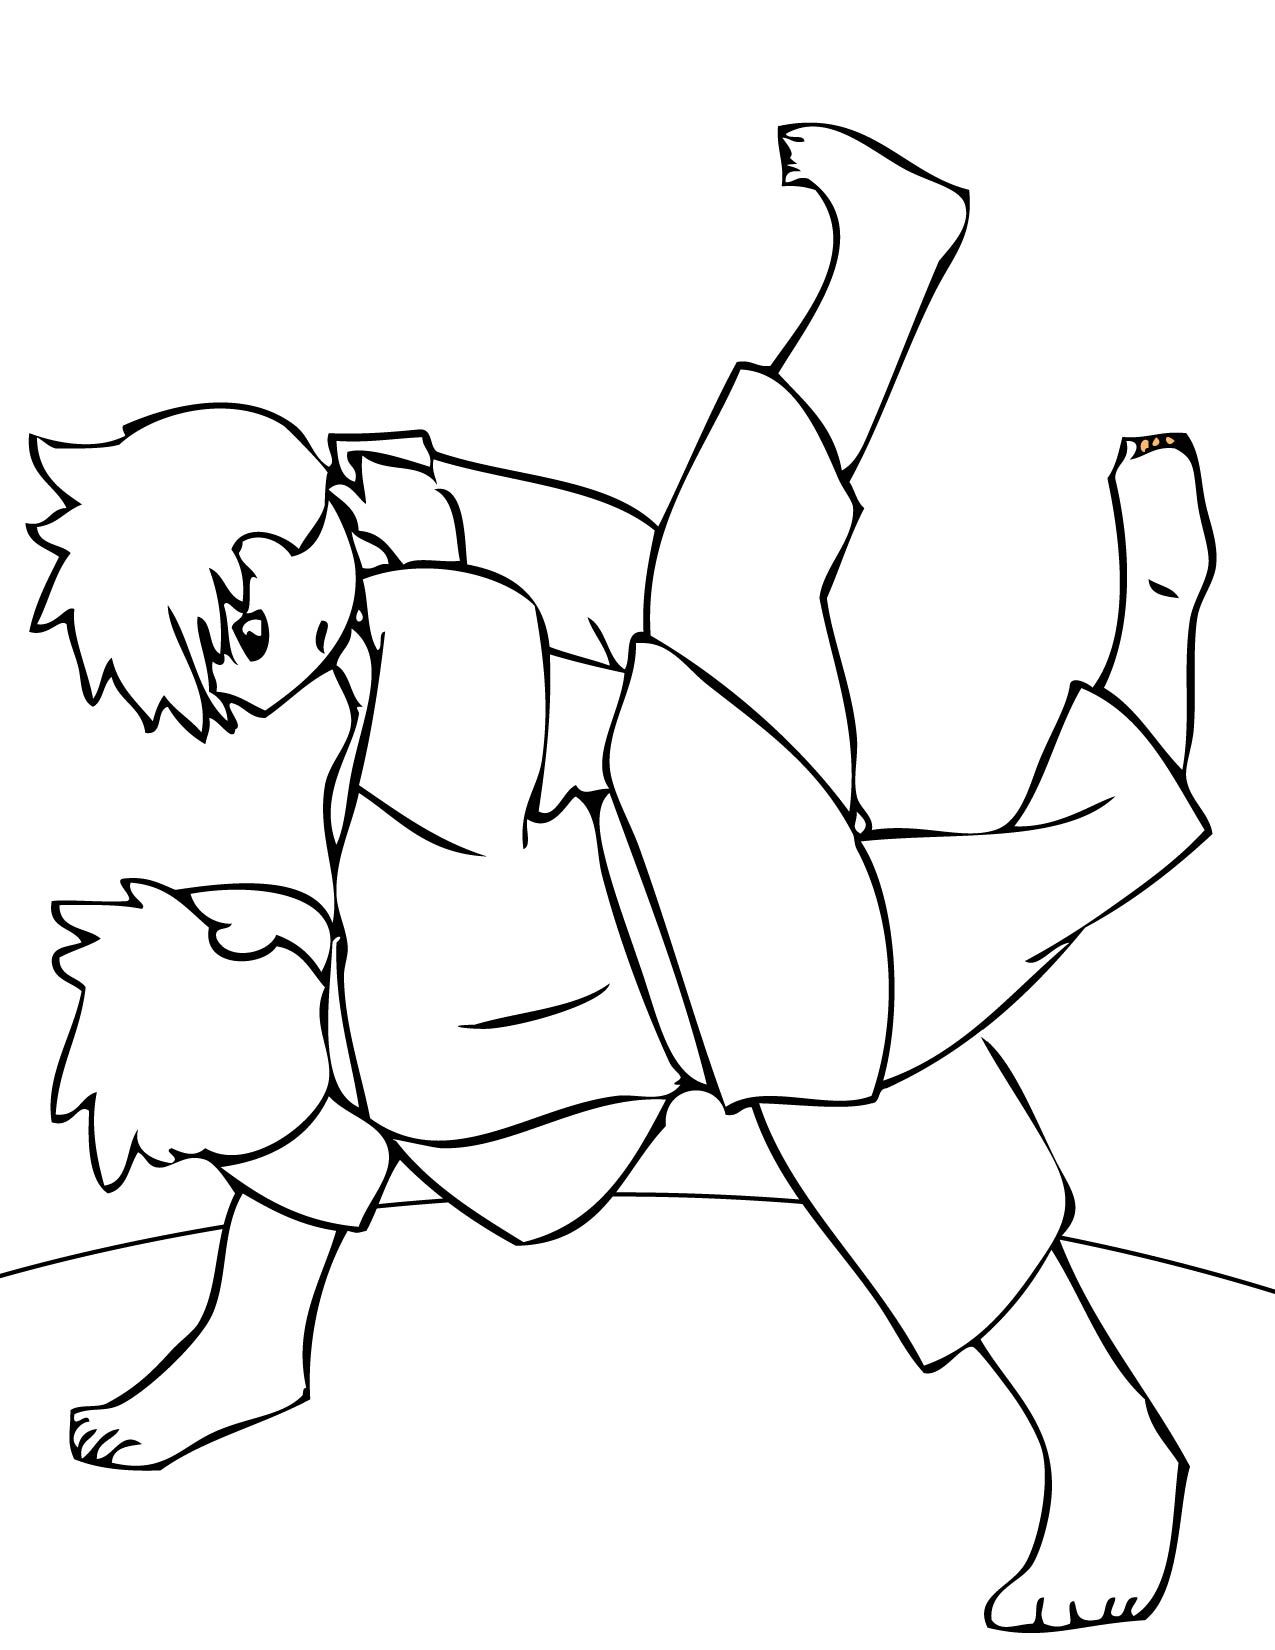 color karate | Karate coloring pages | Pinterest